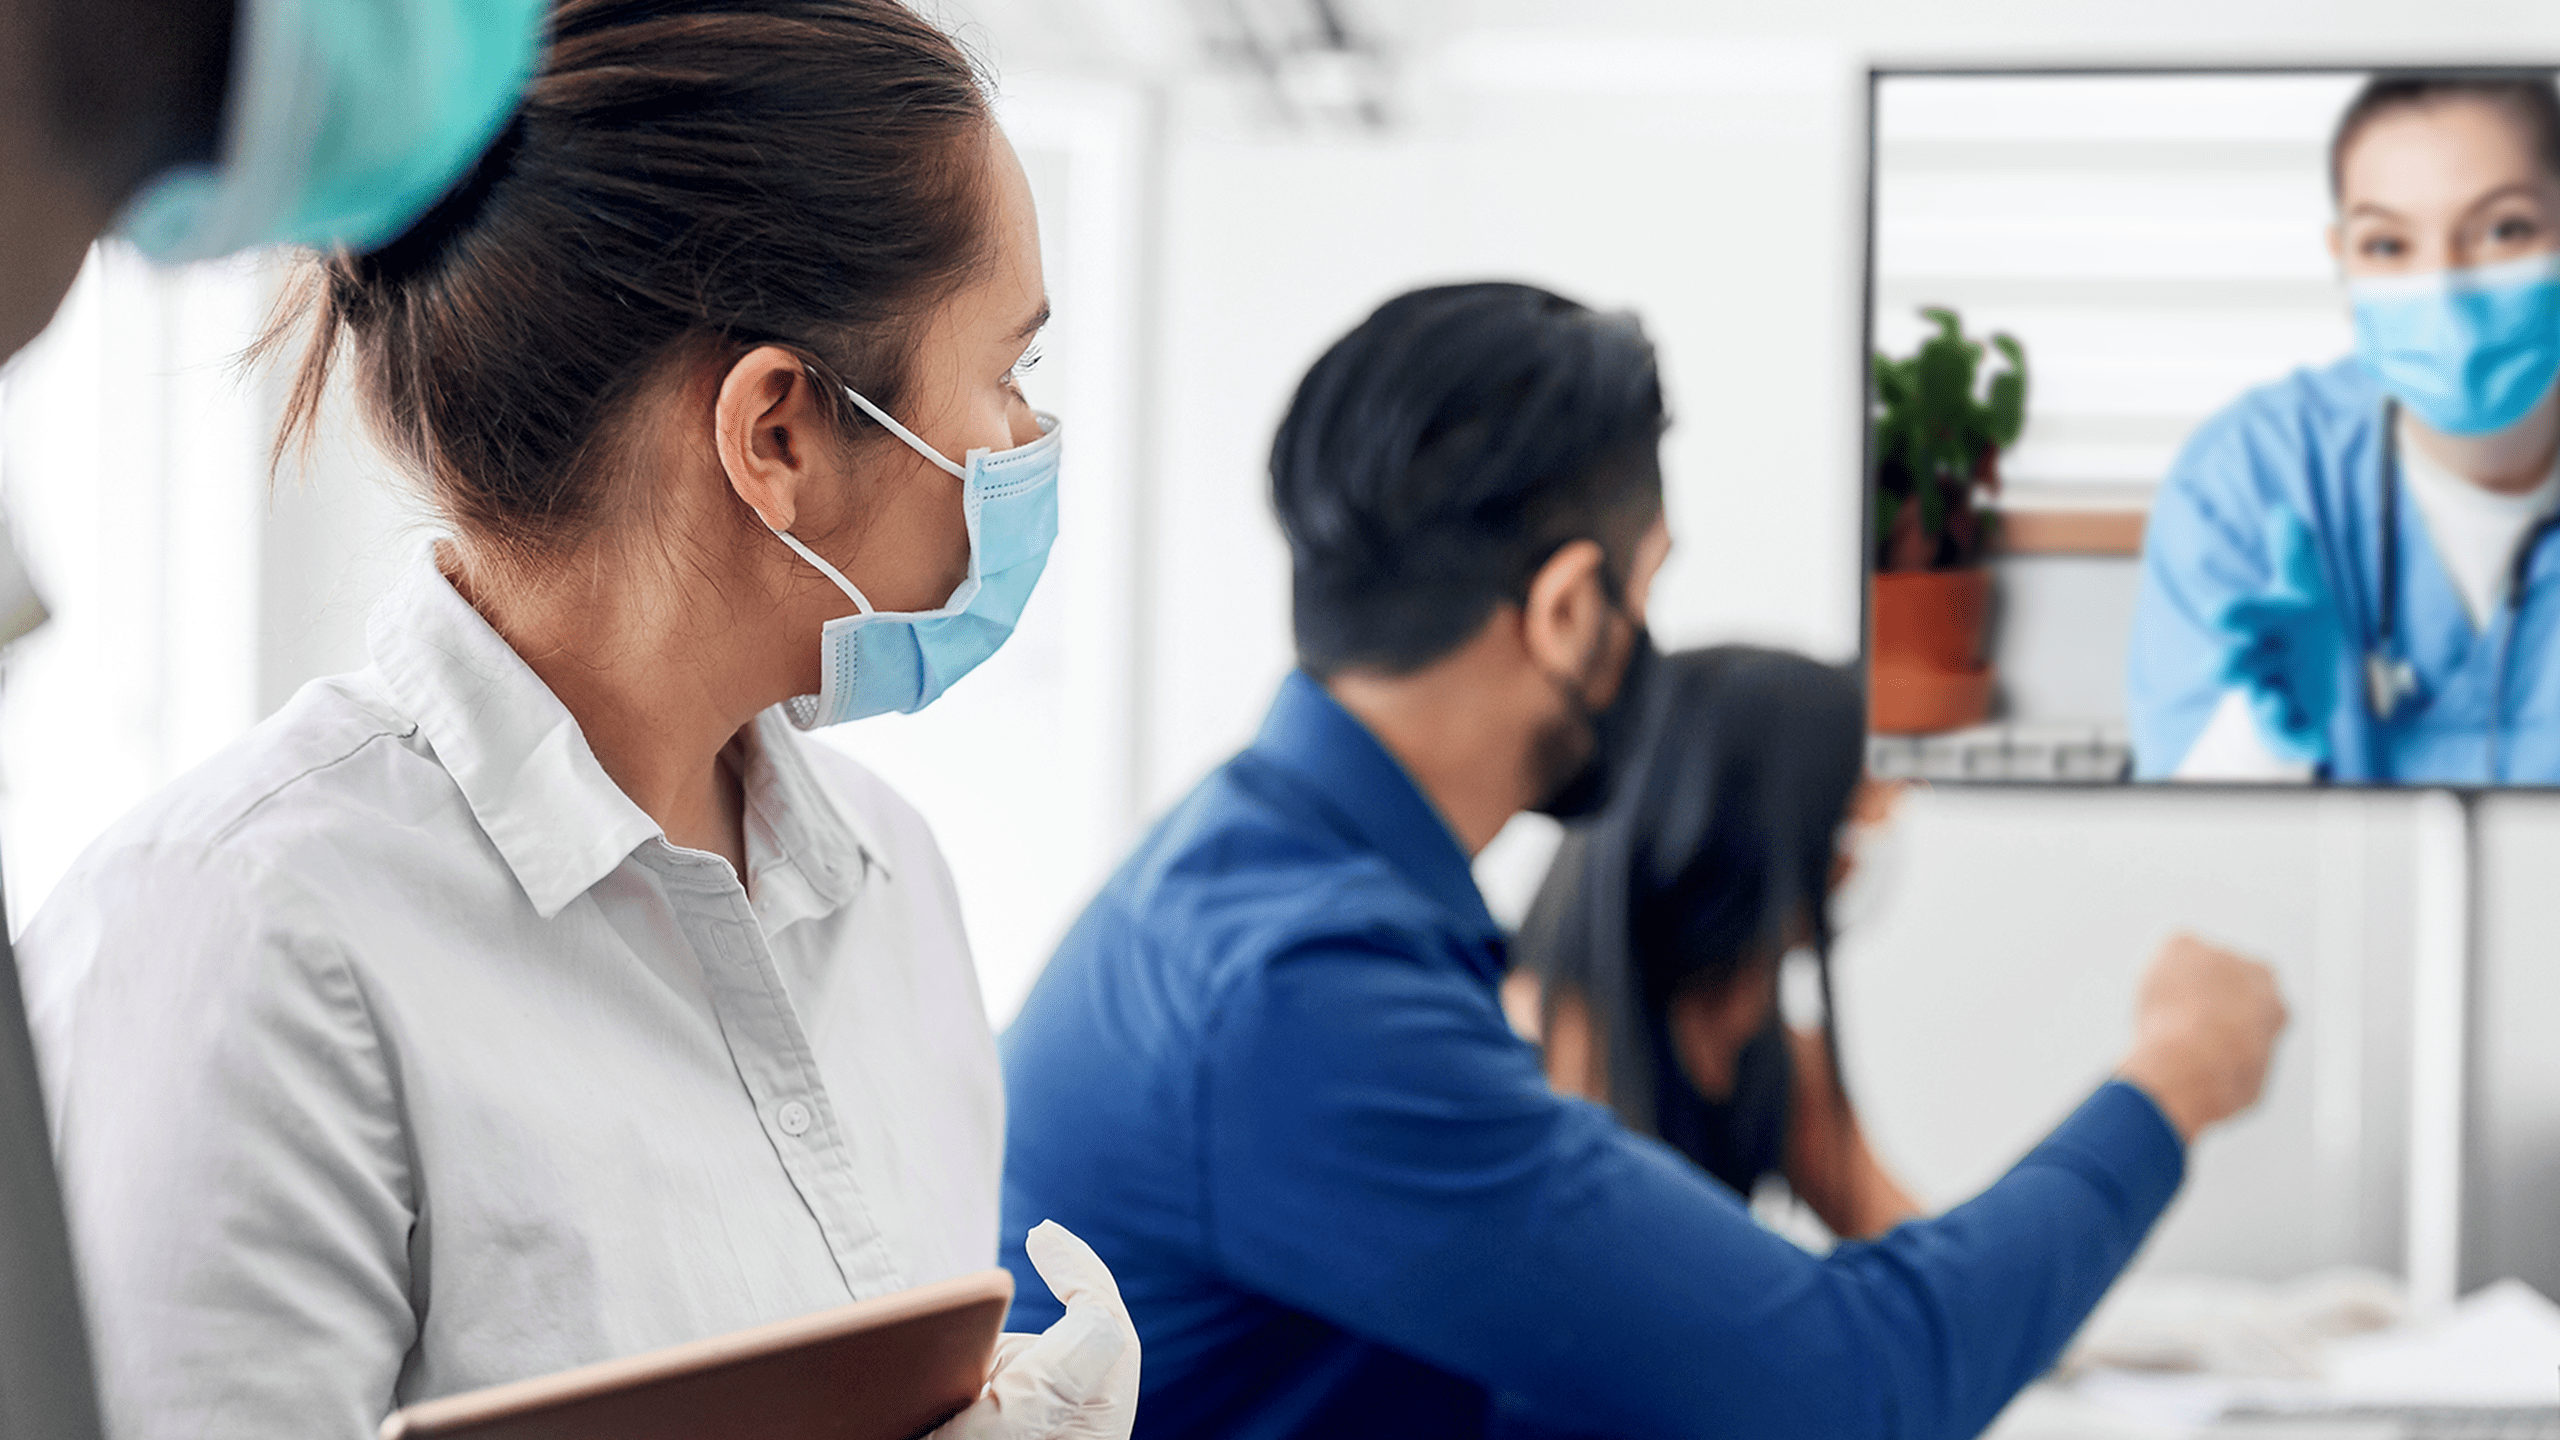 Virtual collaboration with a physician